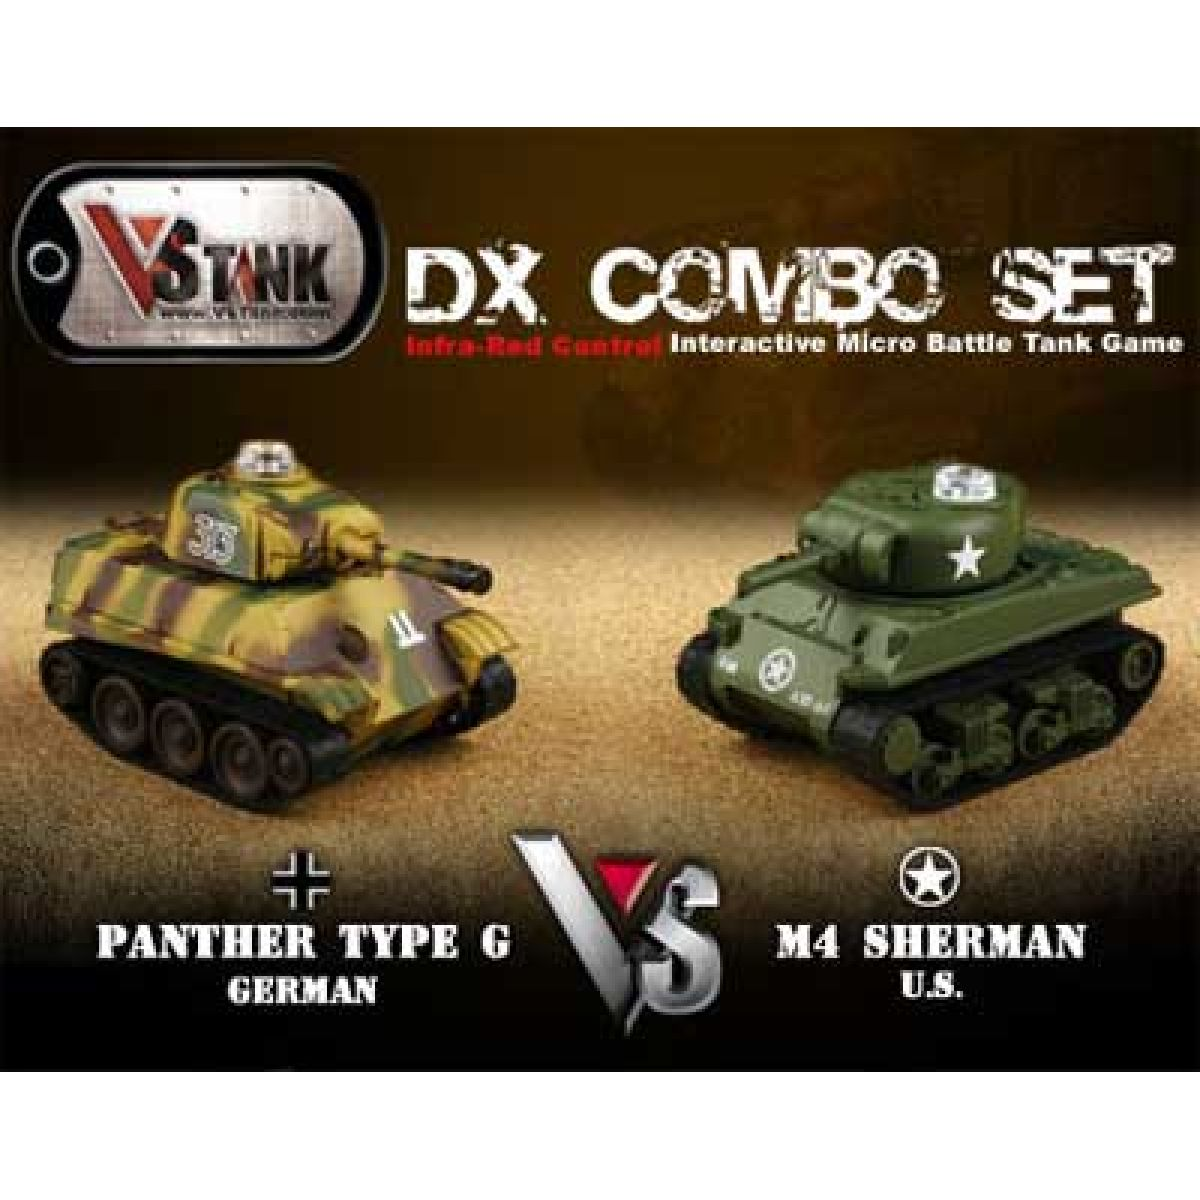 VsTank V4 Double Panther vs. US Sherman